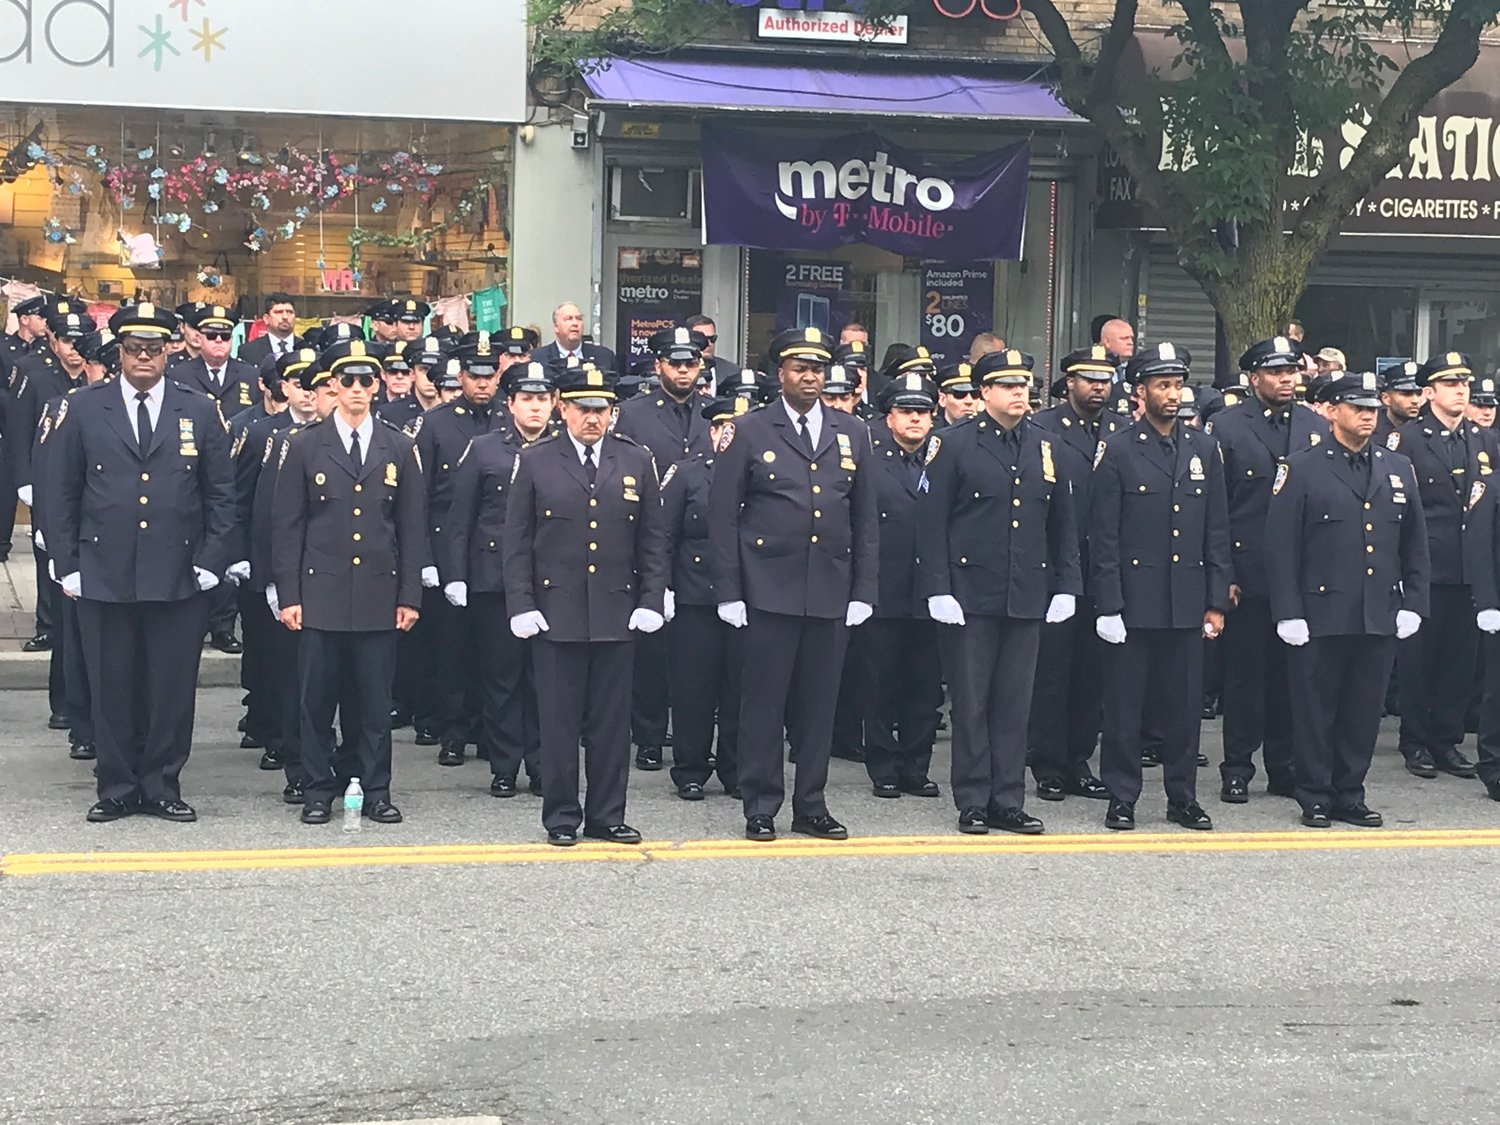 Police lined Ditmars Boulevard outside of the church and stood at attention.